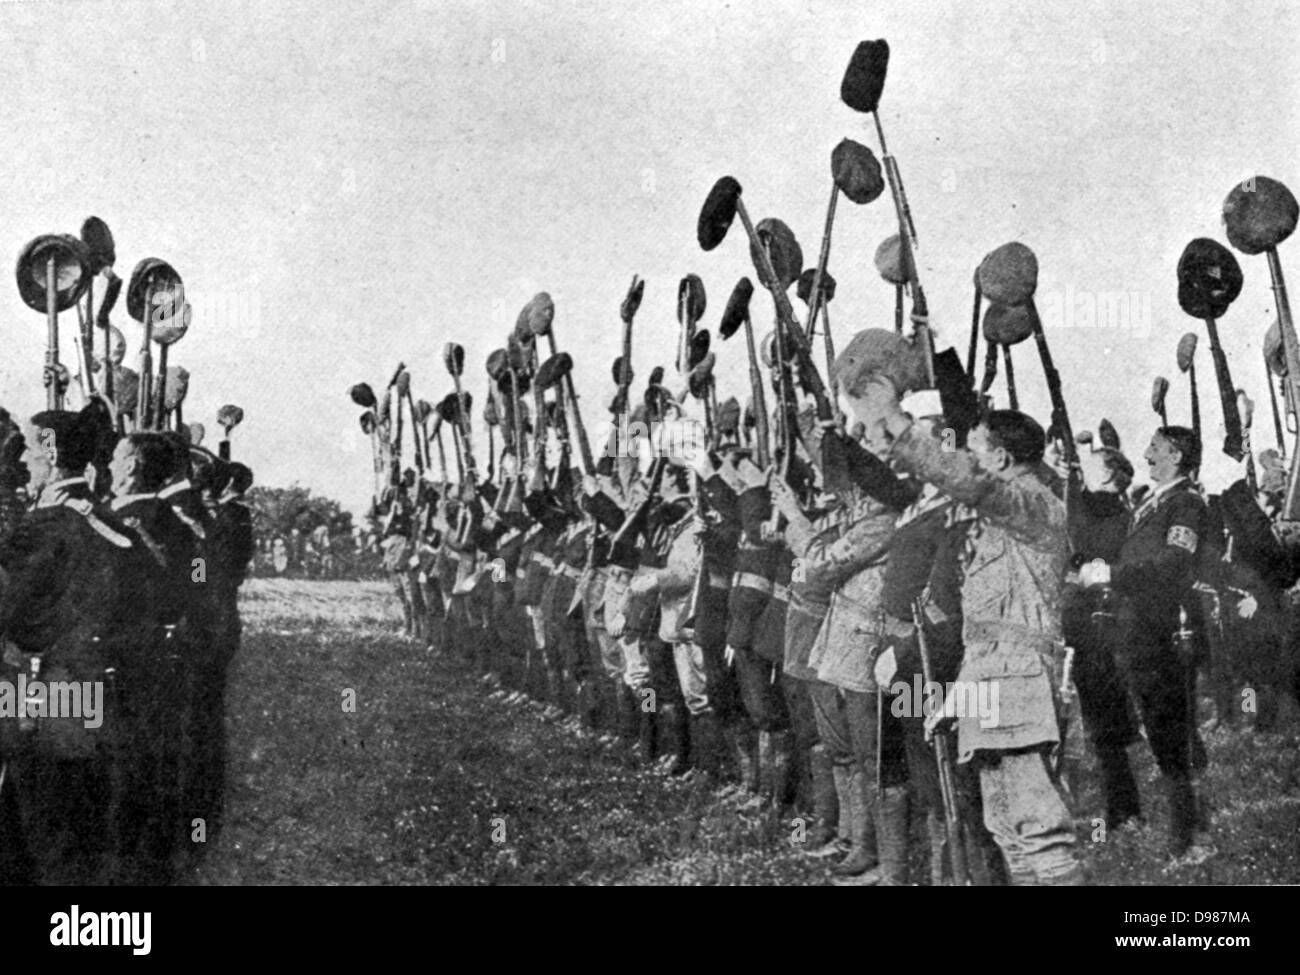 Ulster volunteers, armed and drilling preparatoy to forcibly rejecting Home Rule. - Stock Image